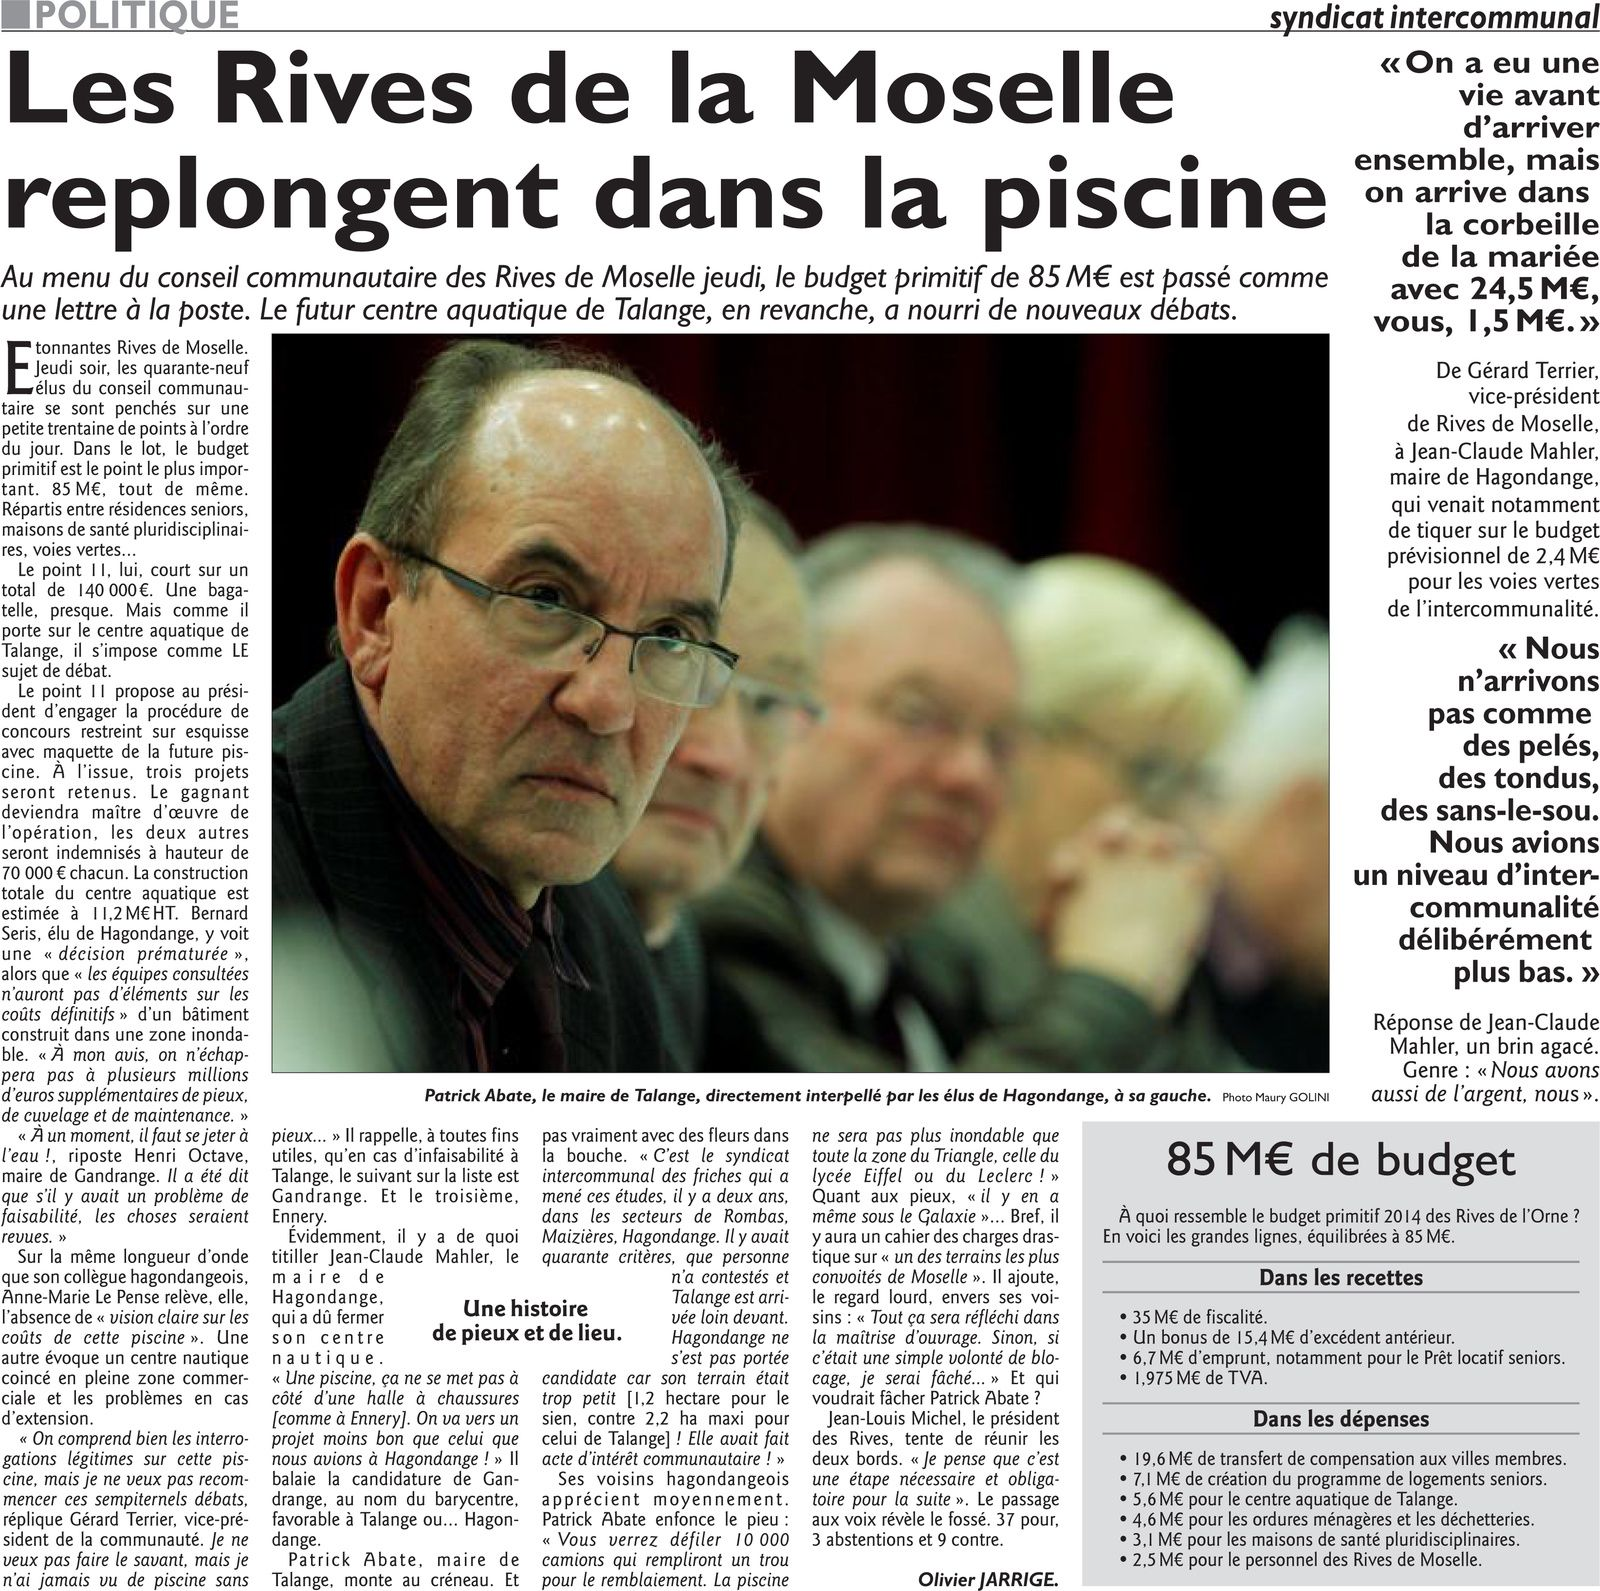 Rives de Moselle replongent dans la piscine